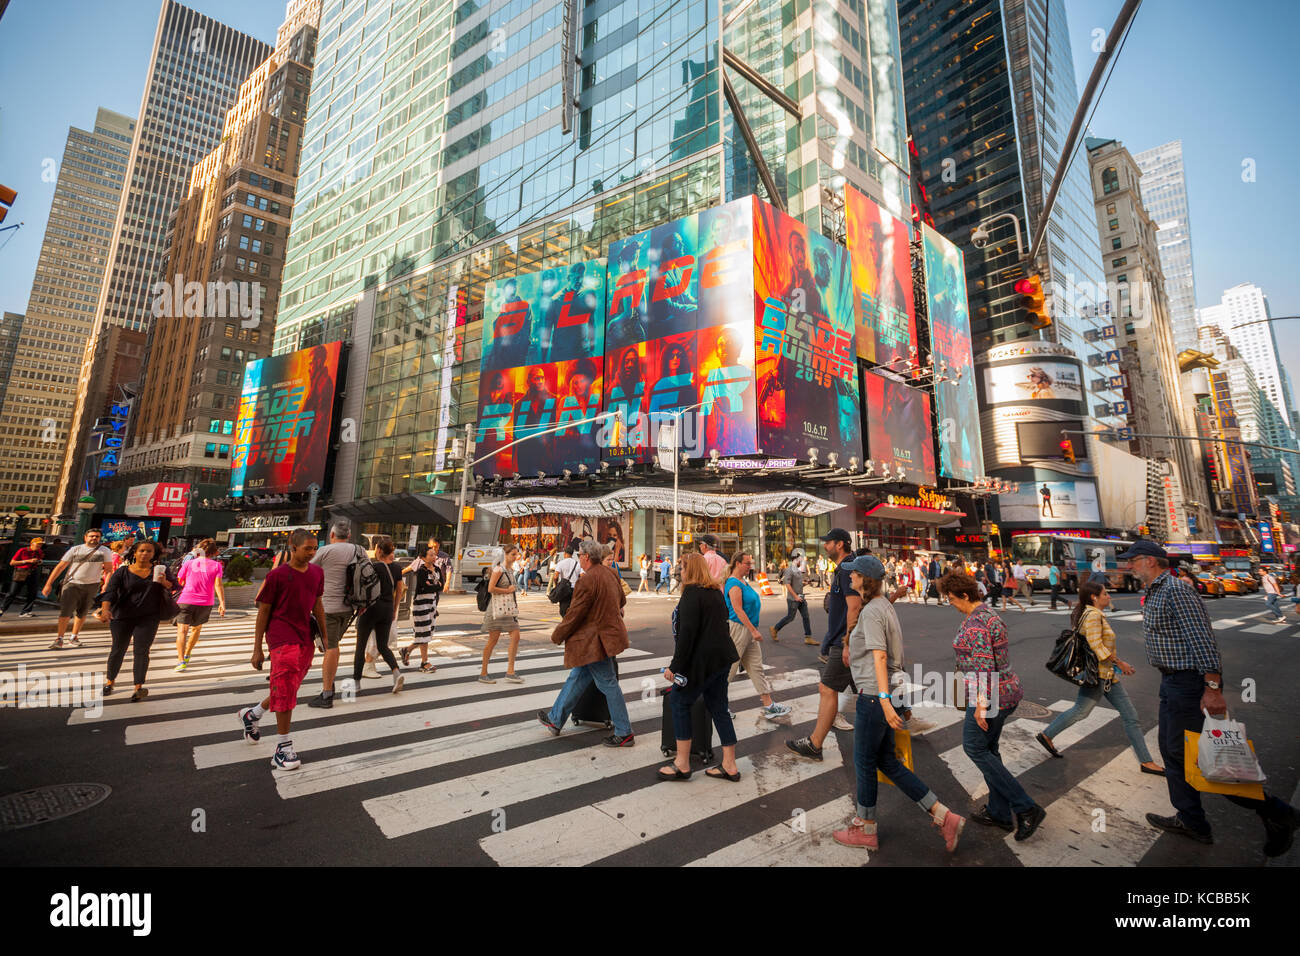 Advertising for the Warner Bros. Pictures'  'Blade Runner 2049' film is seen in Times Square in New - Stock Image